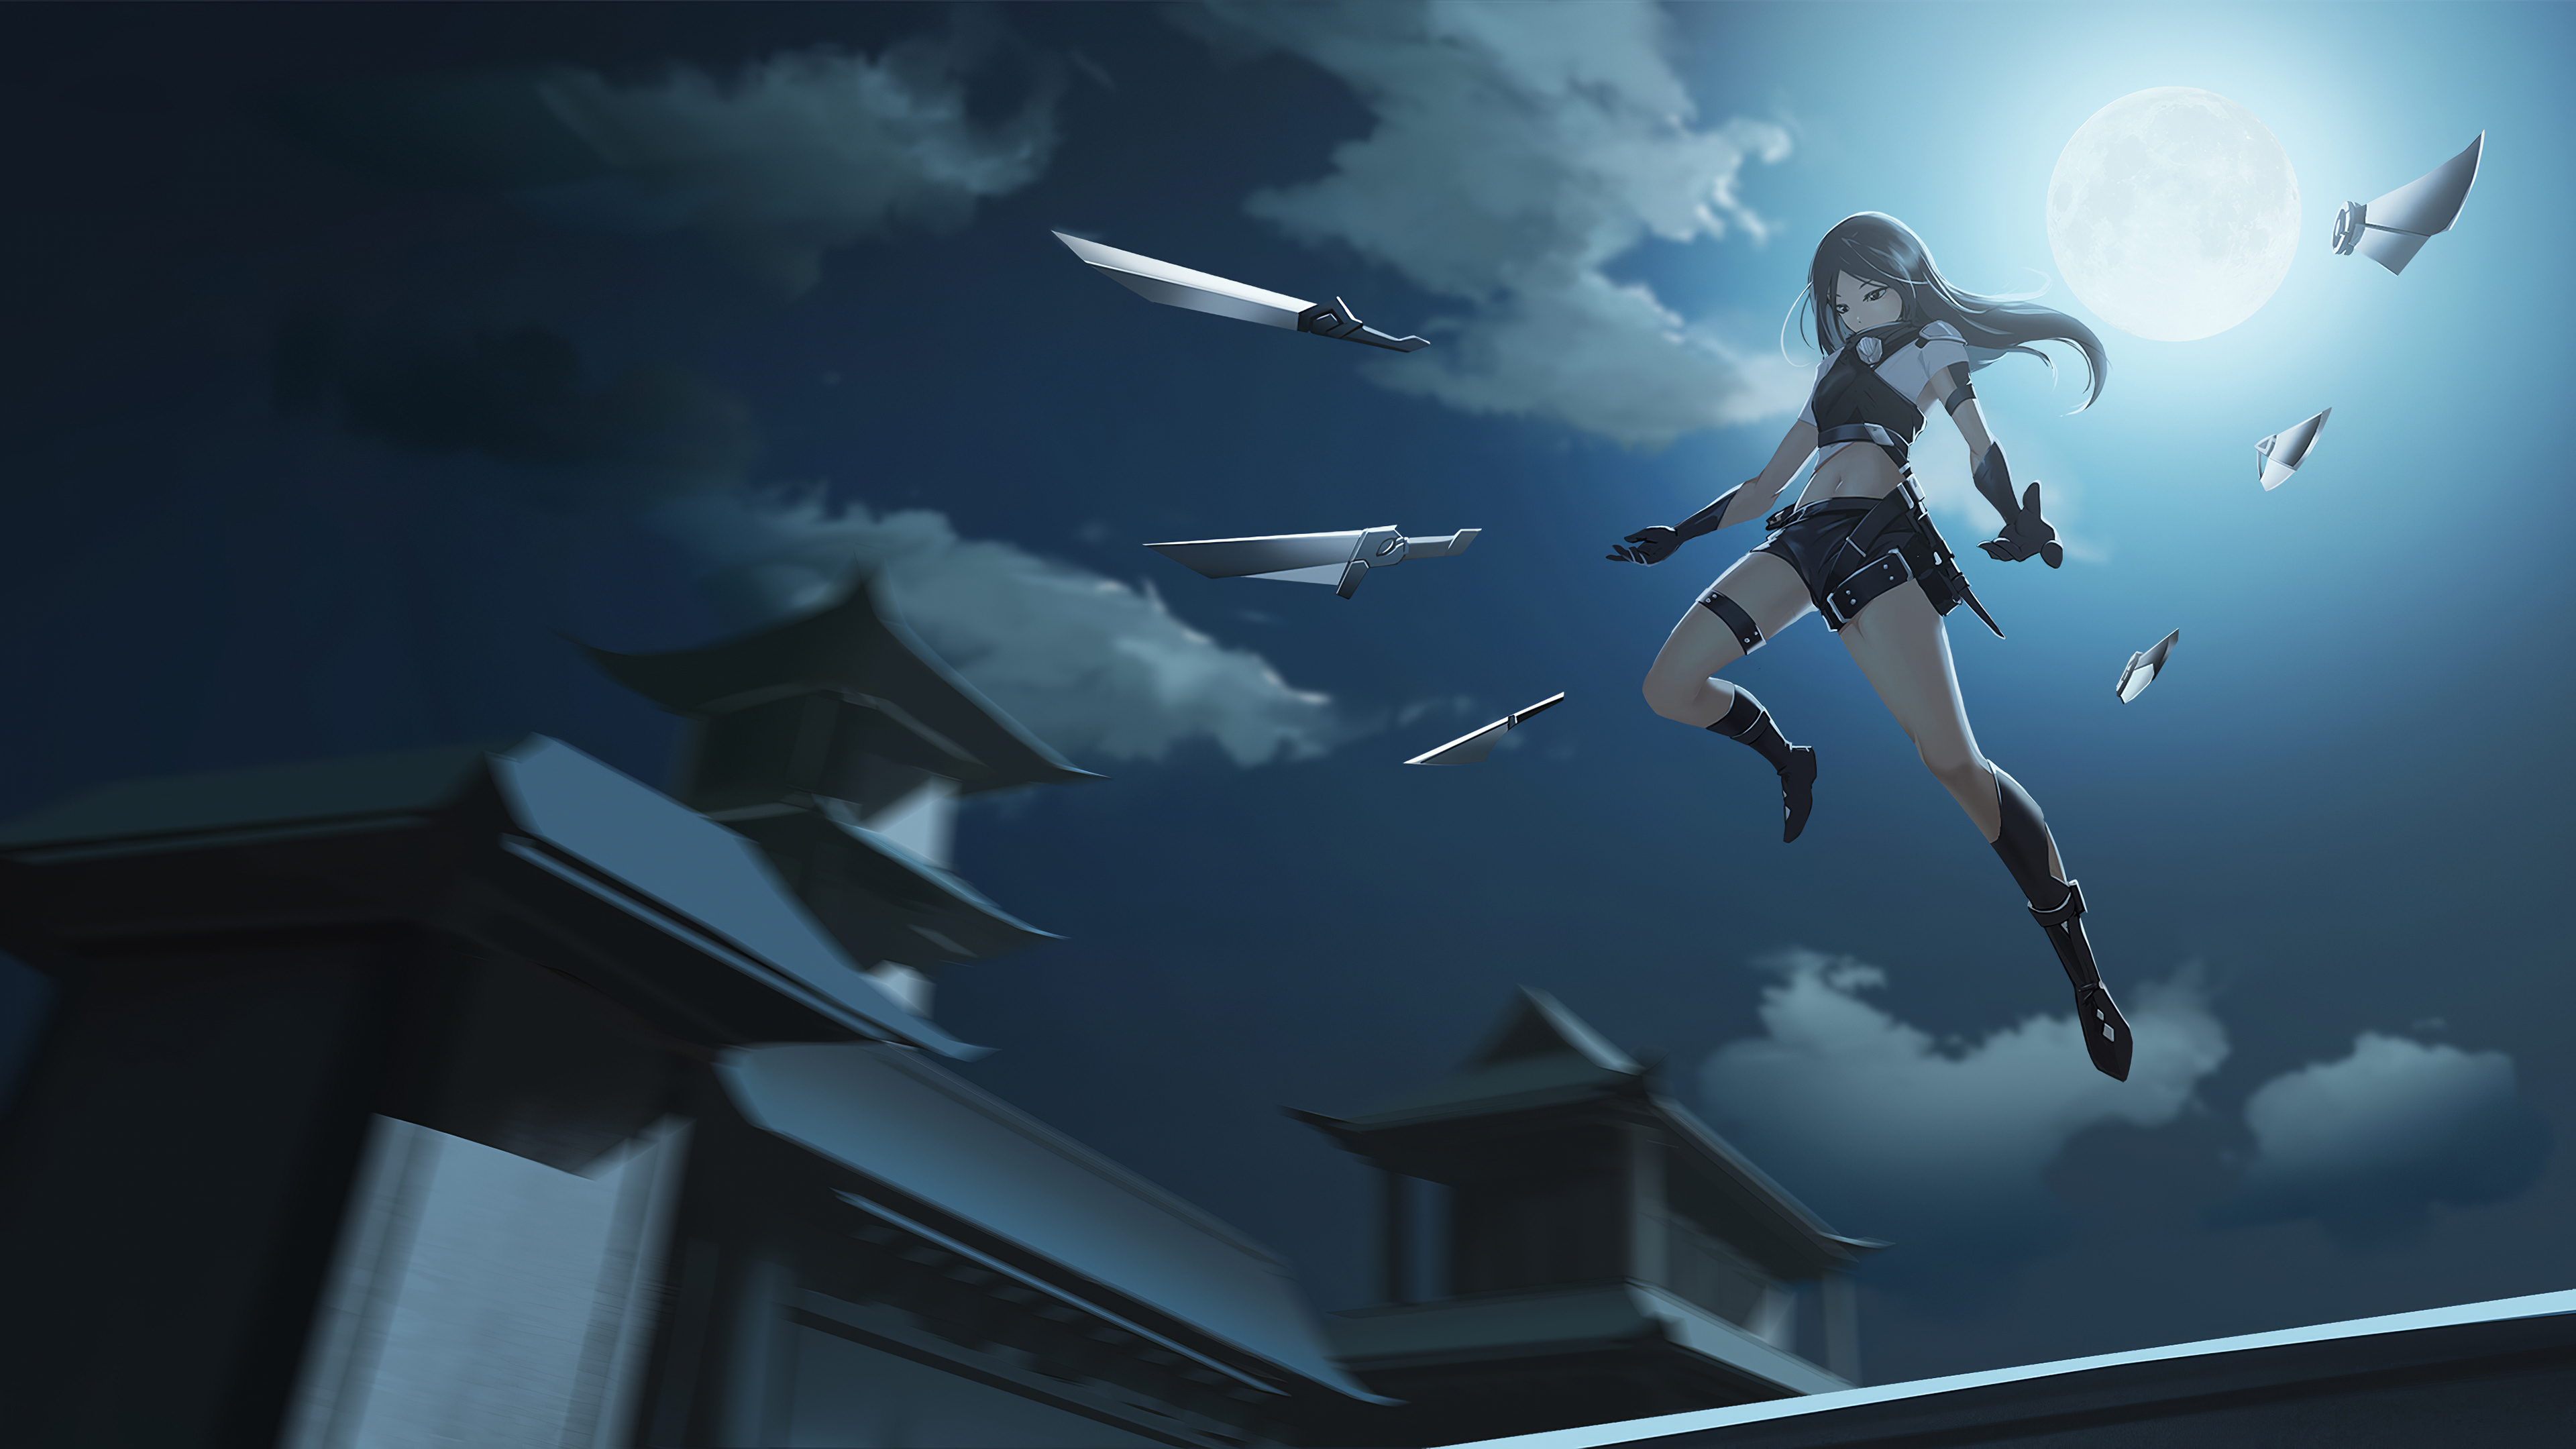 anime girl attack swords small weapons 1578254266 - Anime Girl Attack Swords Small Weapons -